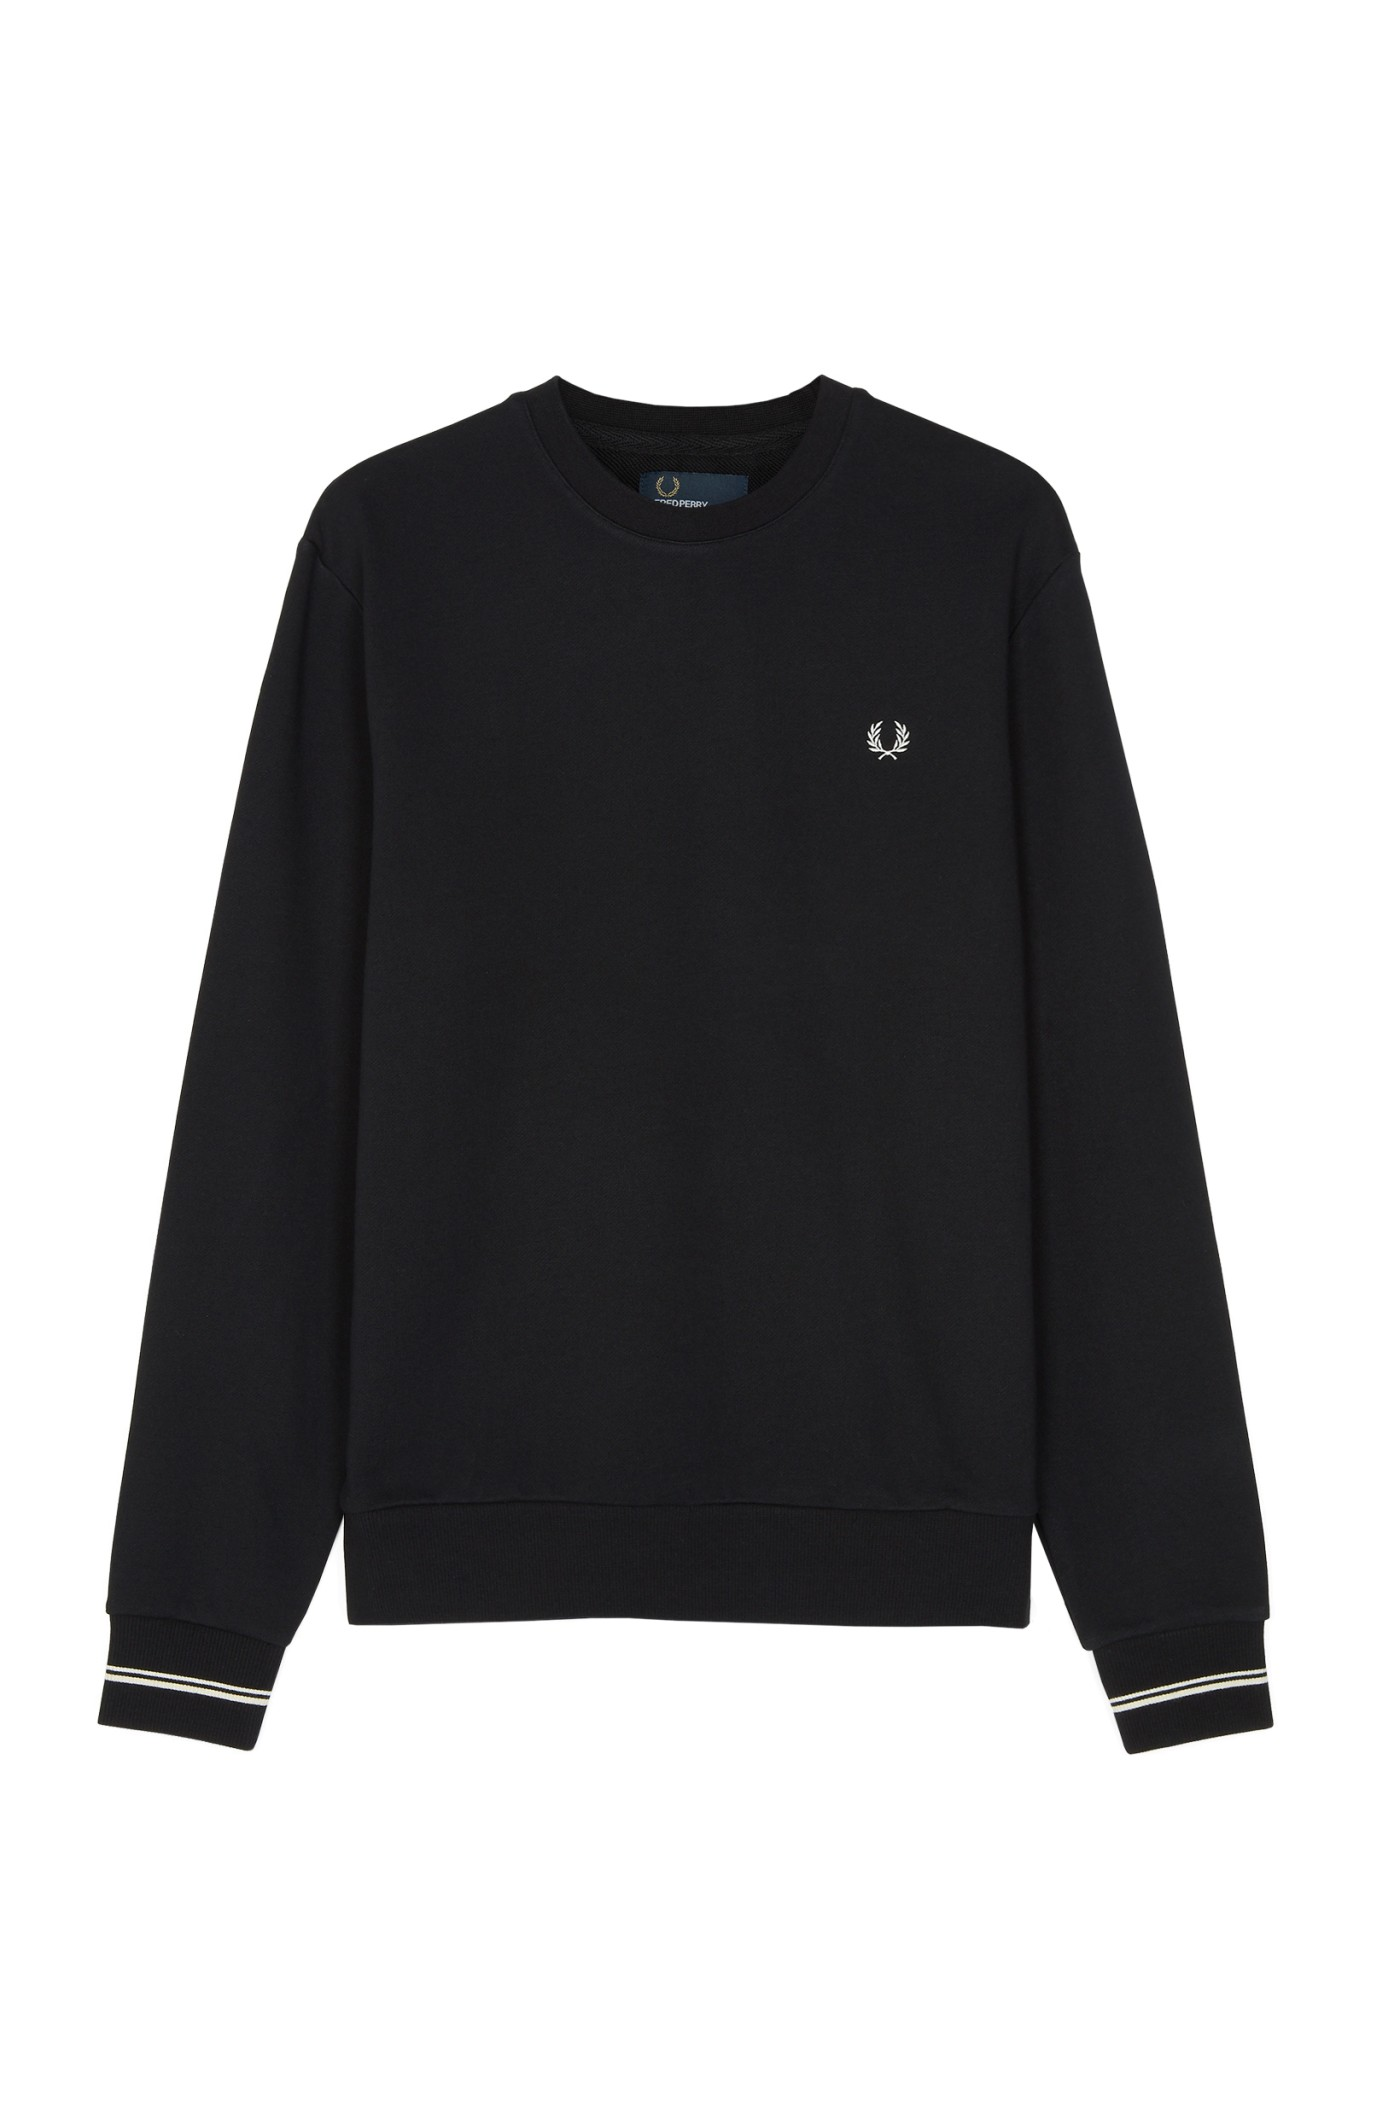 Fred Perry - Crew Neck Sweatshirt Black